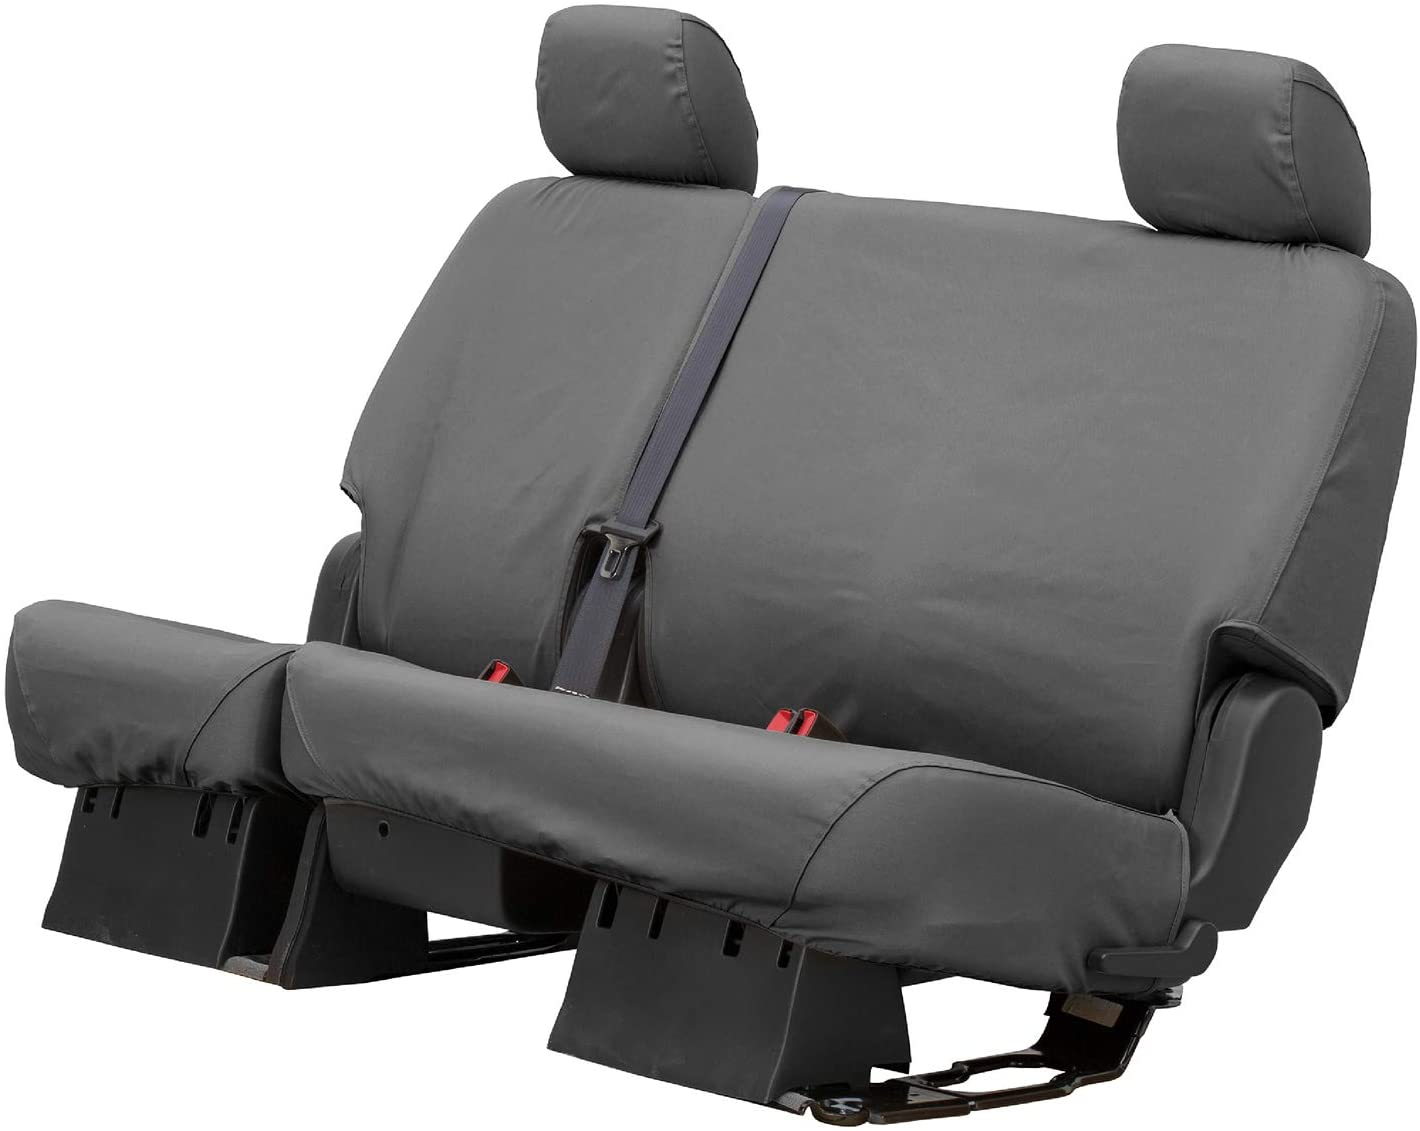 Husky Liners Front Row Seat Cover For 2019 Chevrolet Silverado 1500 Vehicle has Bucket Seats, 2019 GMC Sierra 1500 Vehicle has Bucket Seats 01292